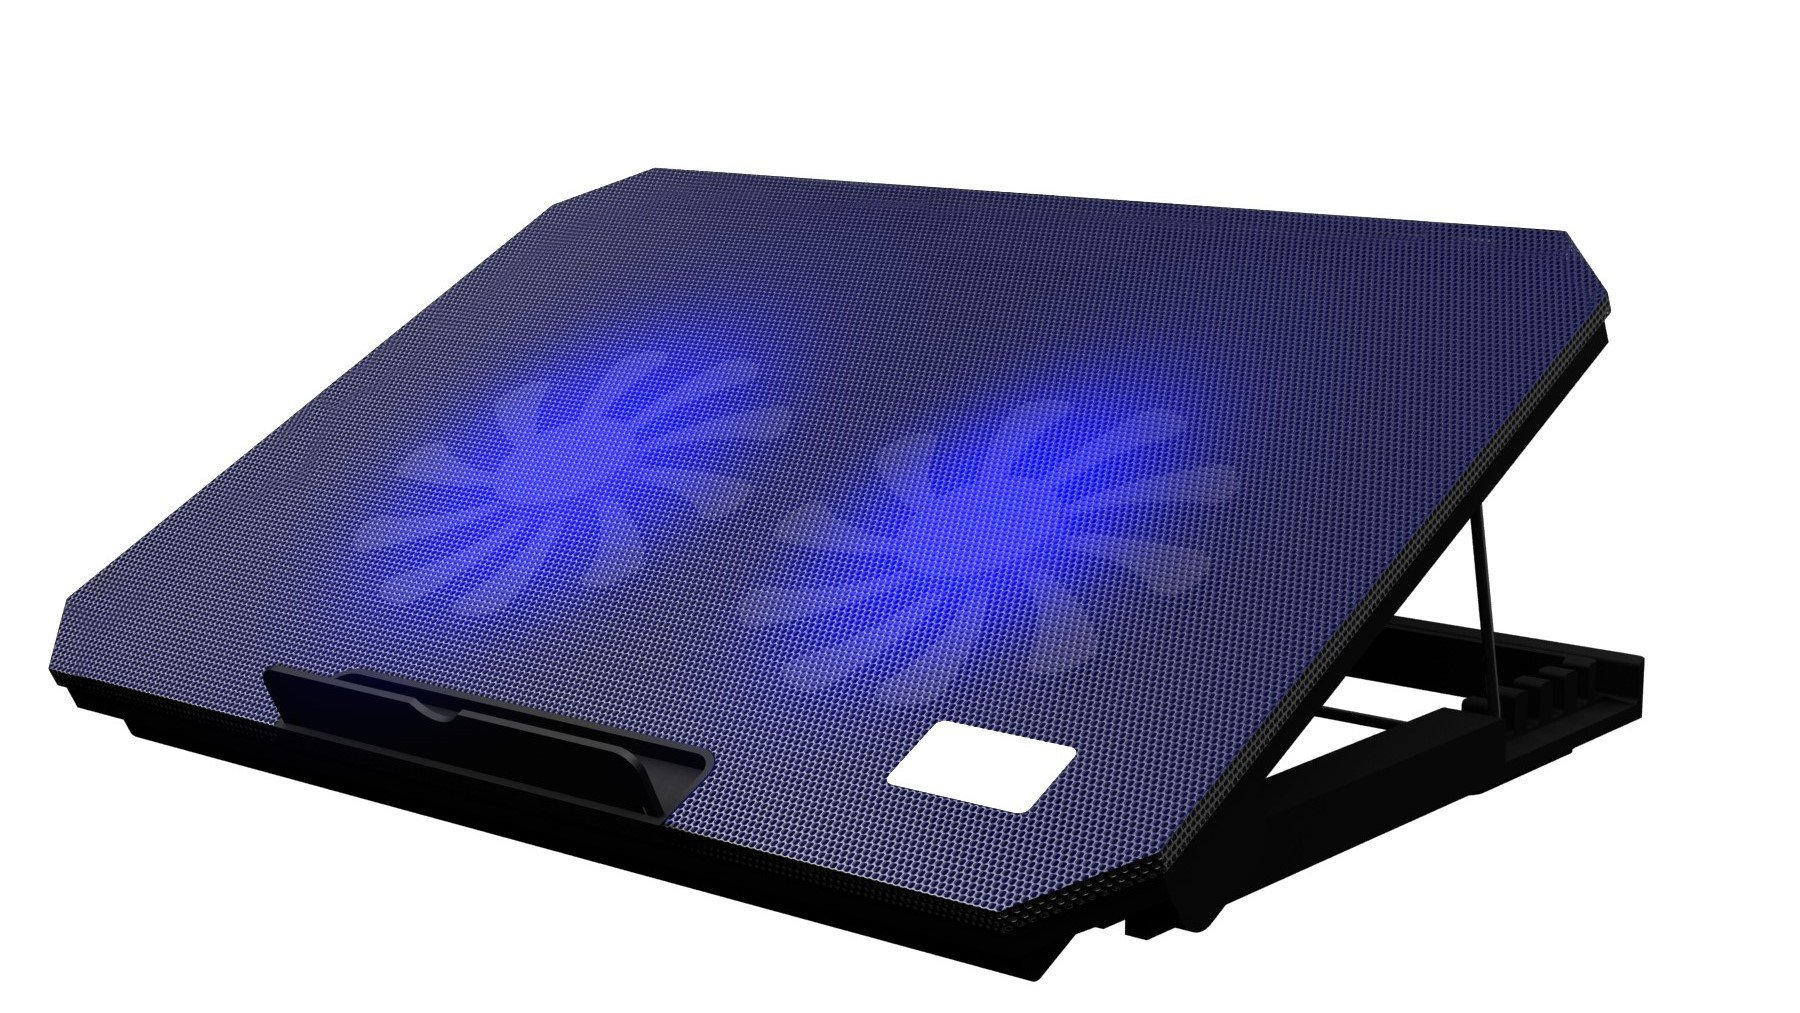 Cooler pad /10-17 inch/